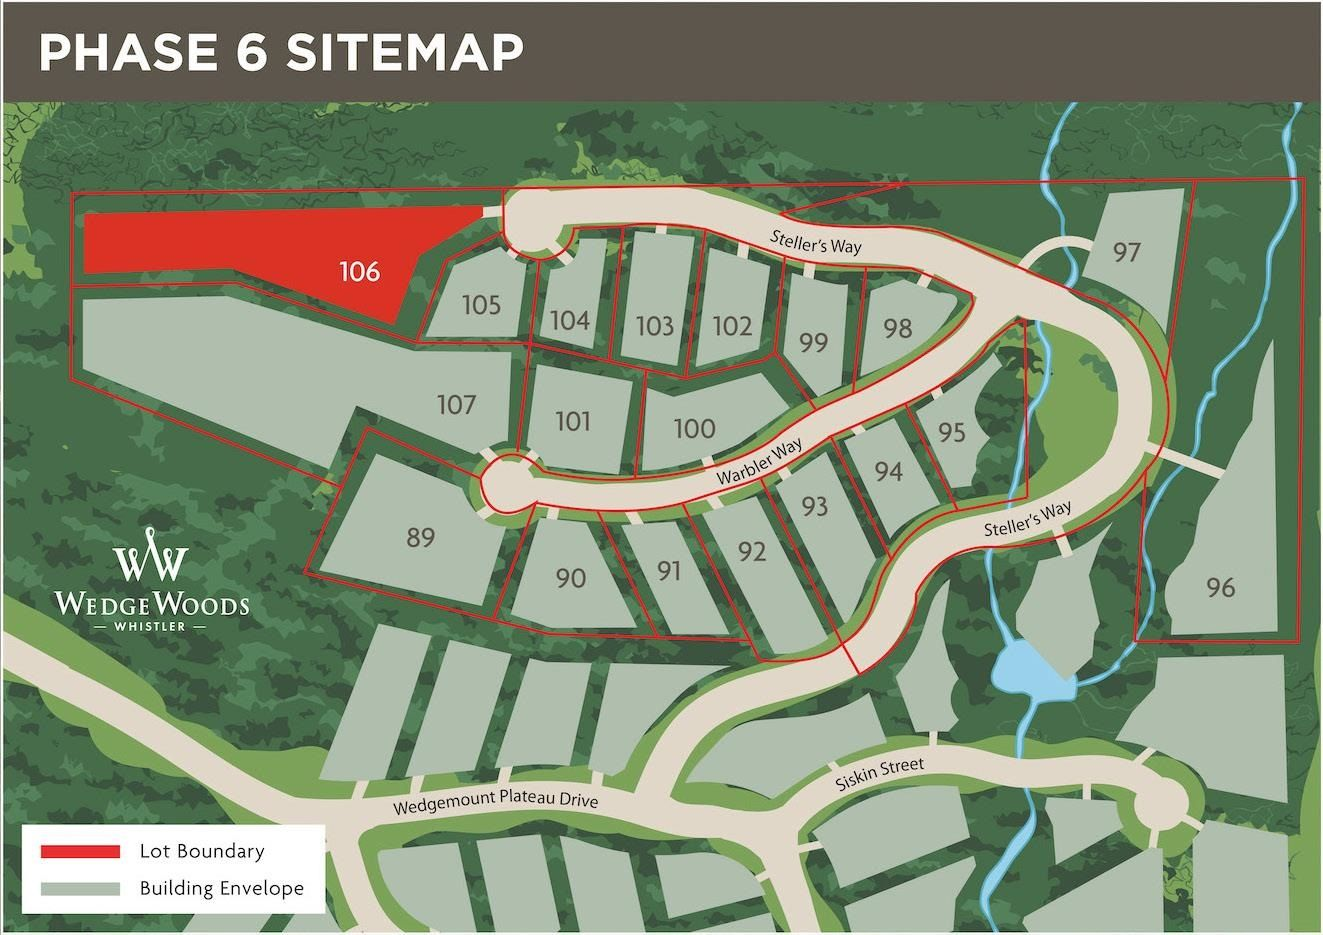 """Main Photo: 9321 STELLER'S Way in Whistler: WedgeWoods Land for sale in """"Wedgewoods"""" : MLS®# R2604101"""